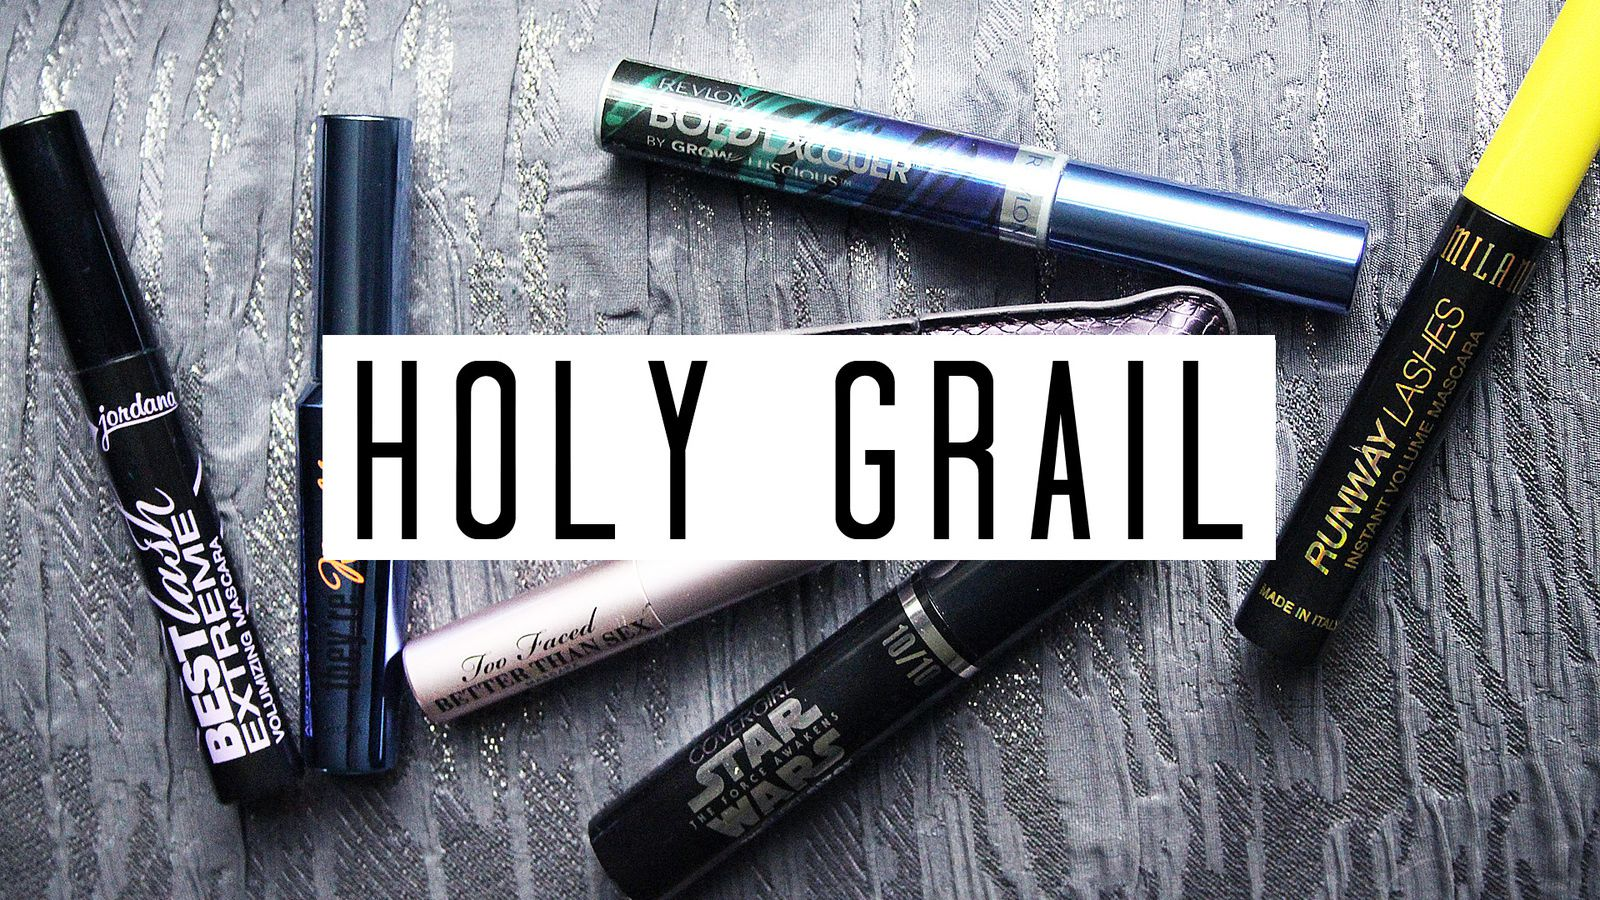 HOLY GRAIL Mascaras // Drugstore & High End